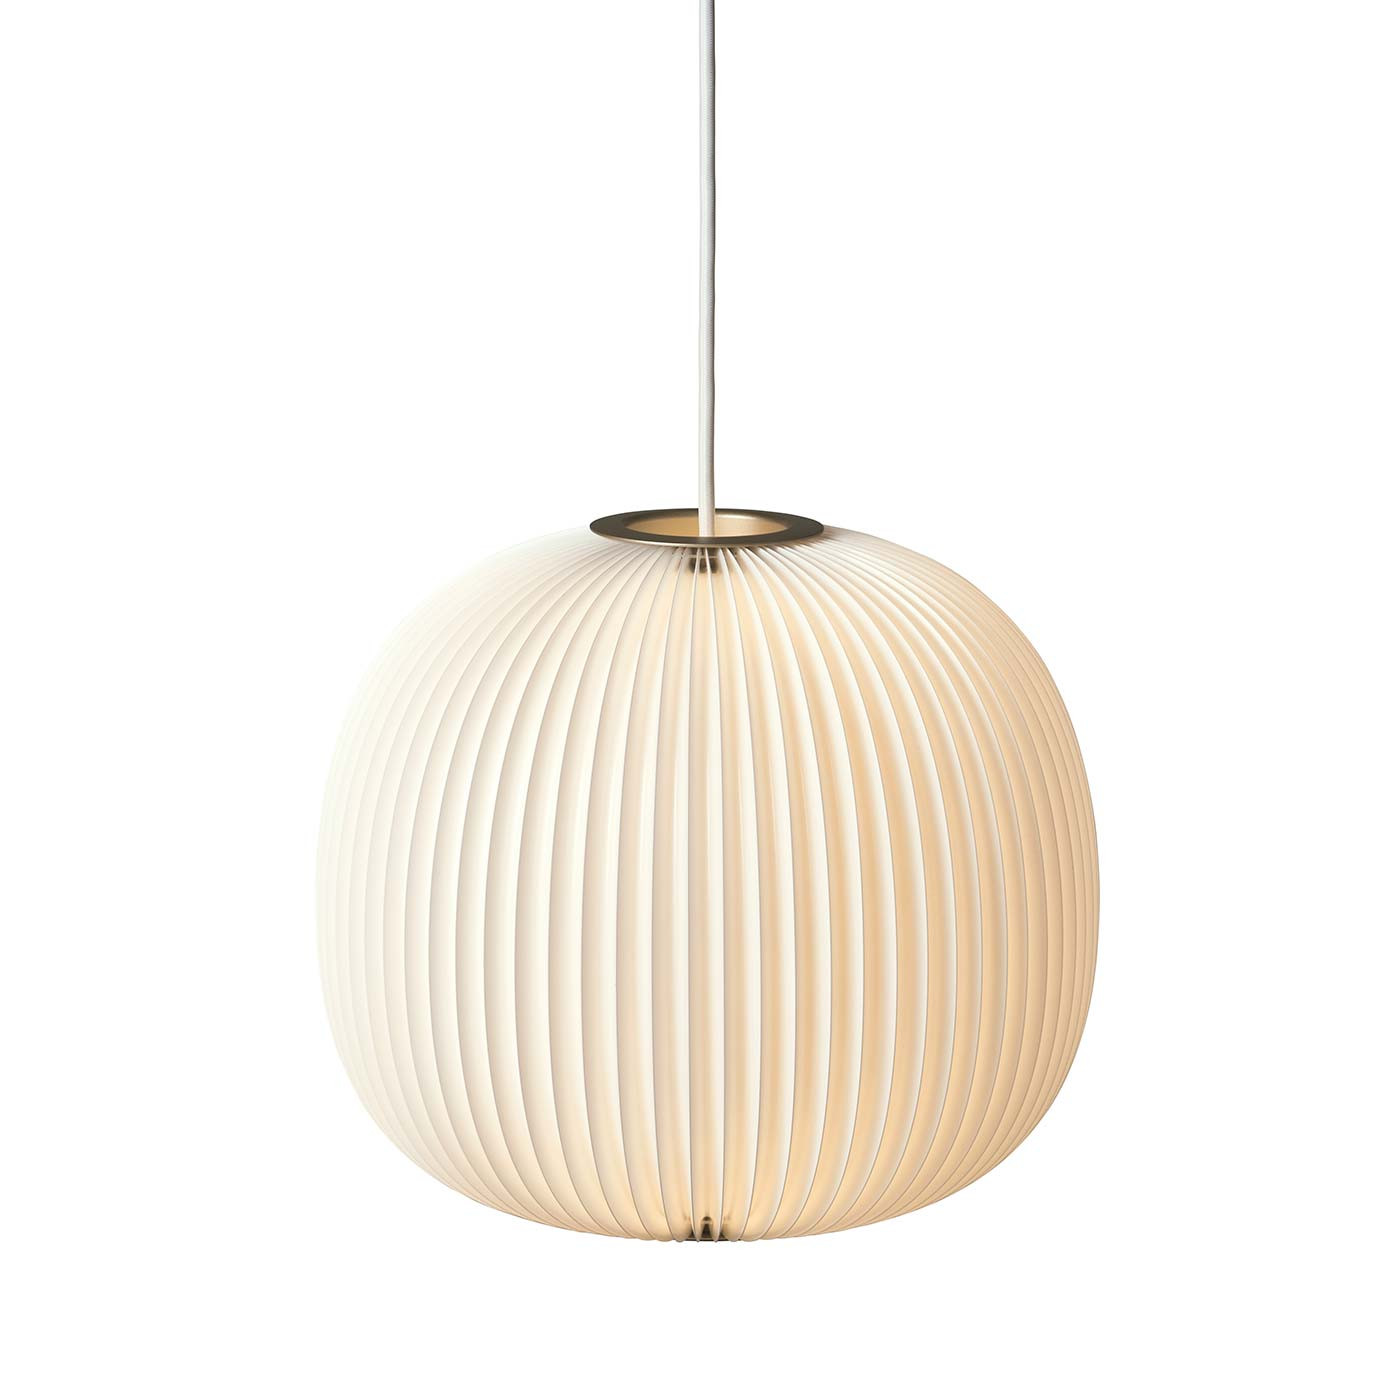 Le Klint Lamella 3 Pendant Light